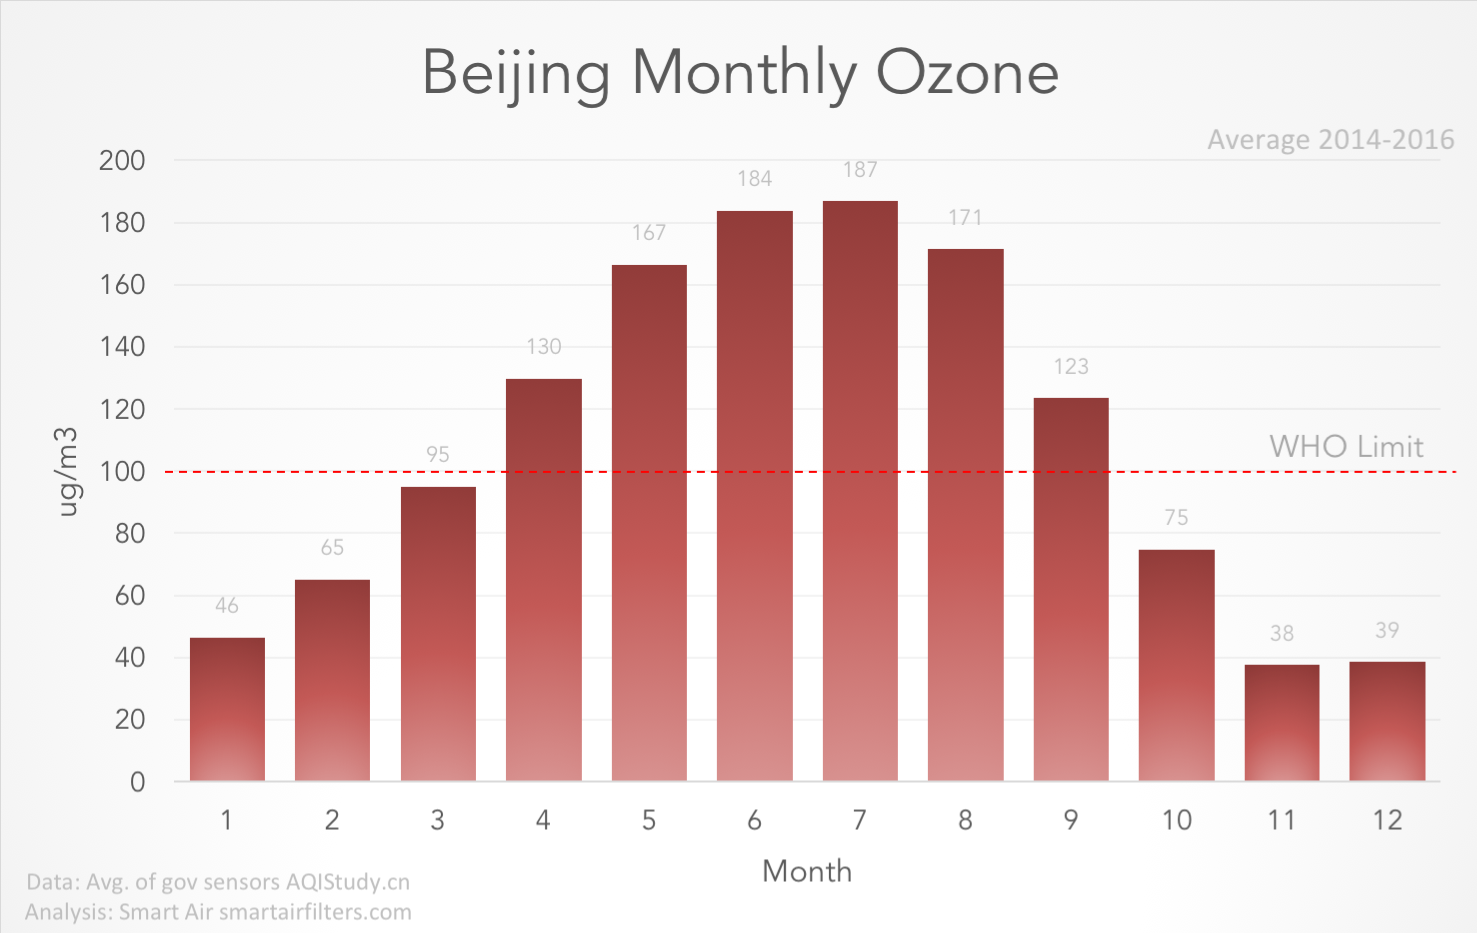 Ozone levels in Beijing, summer and winter 2018